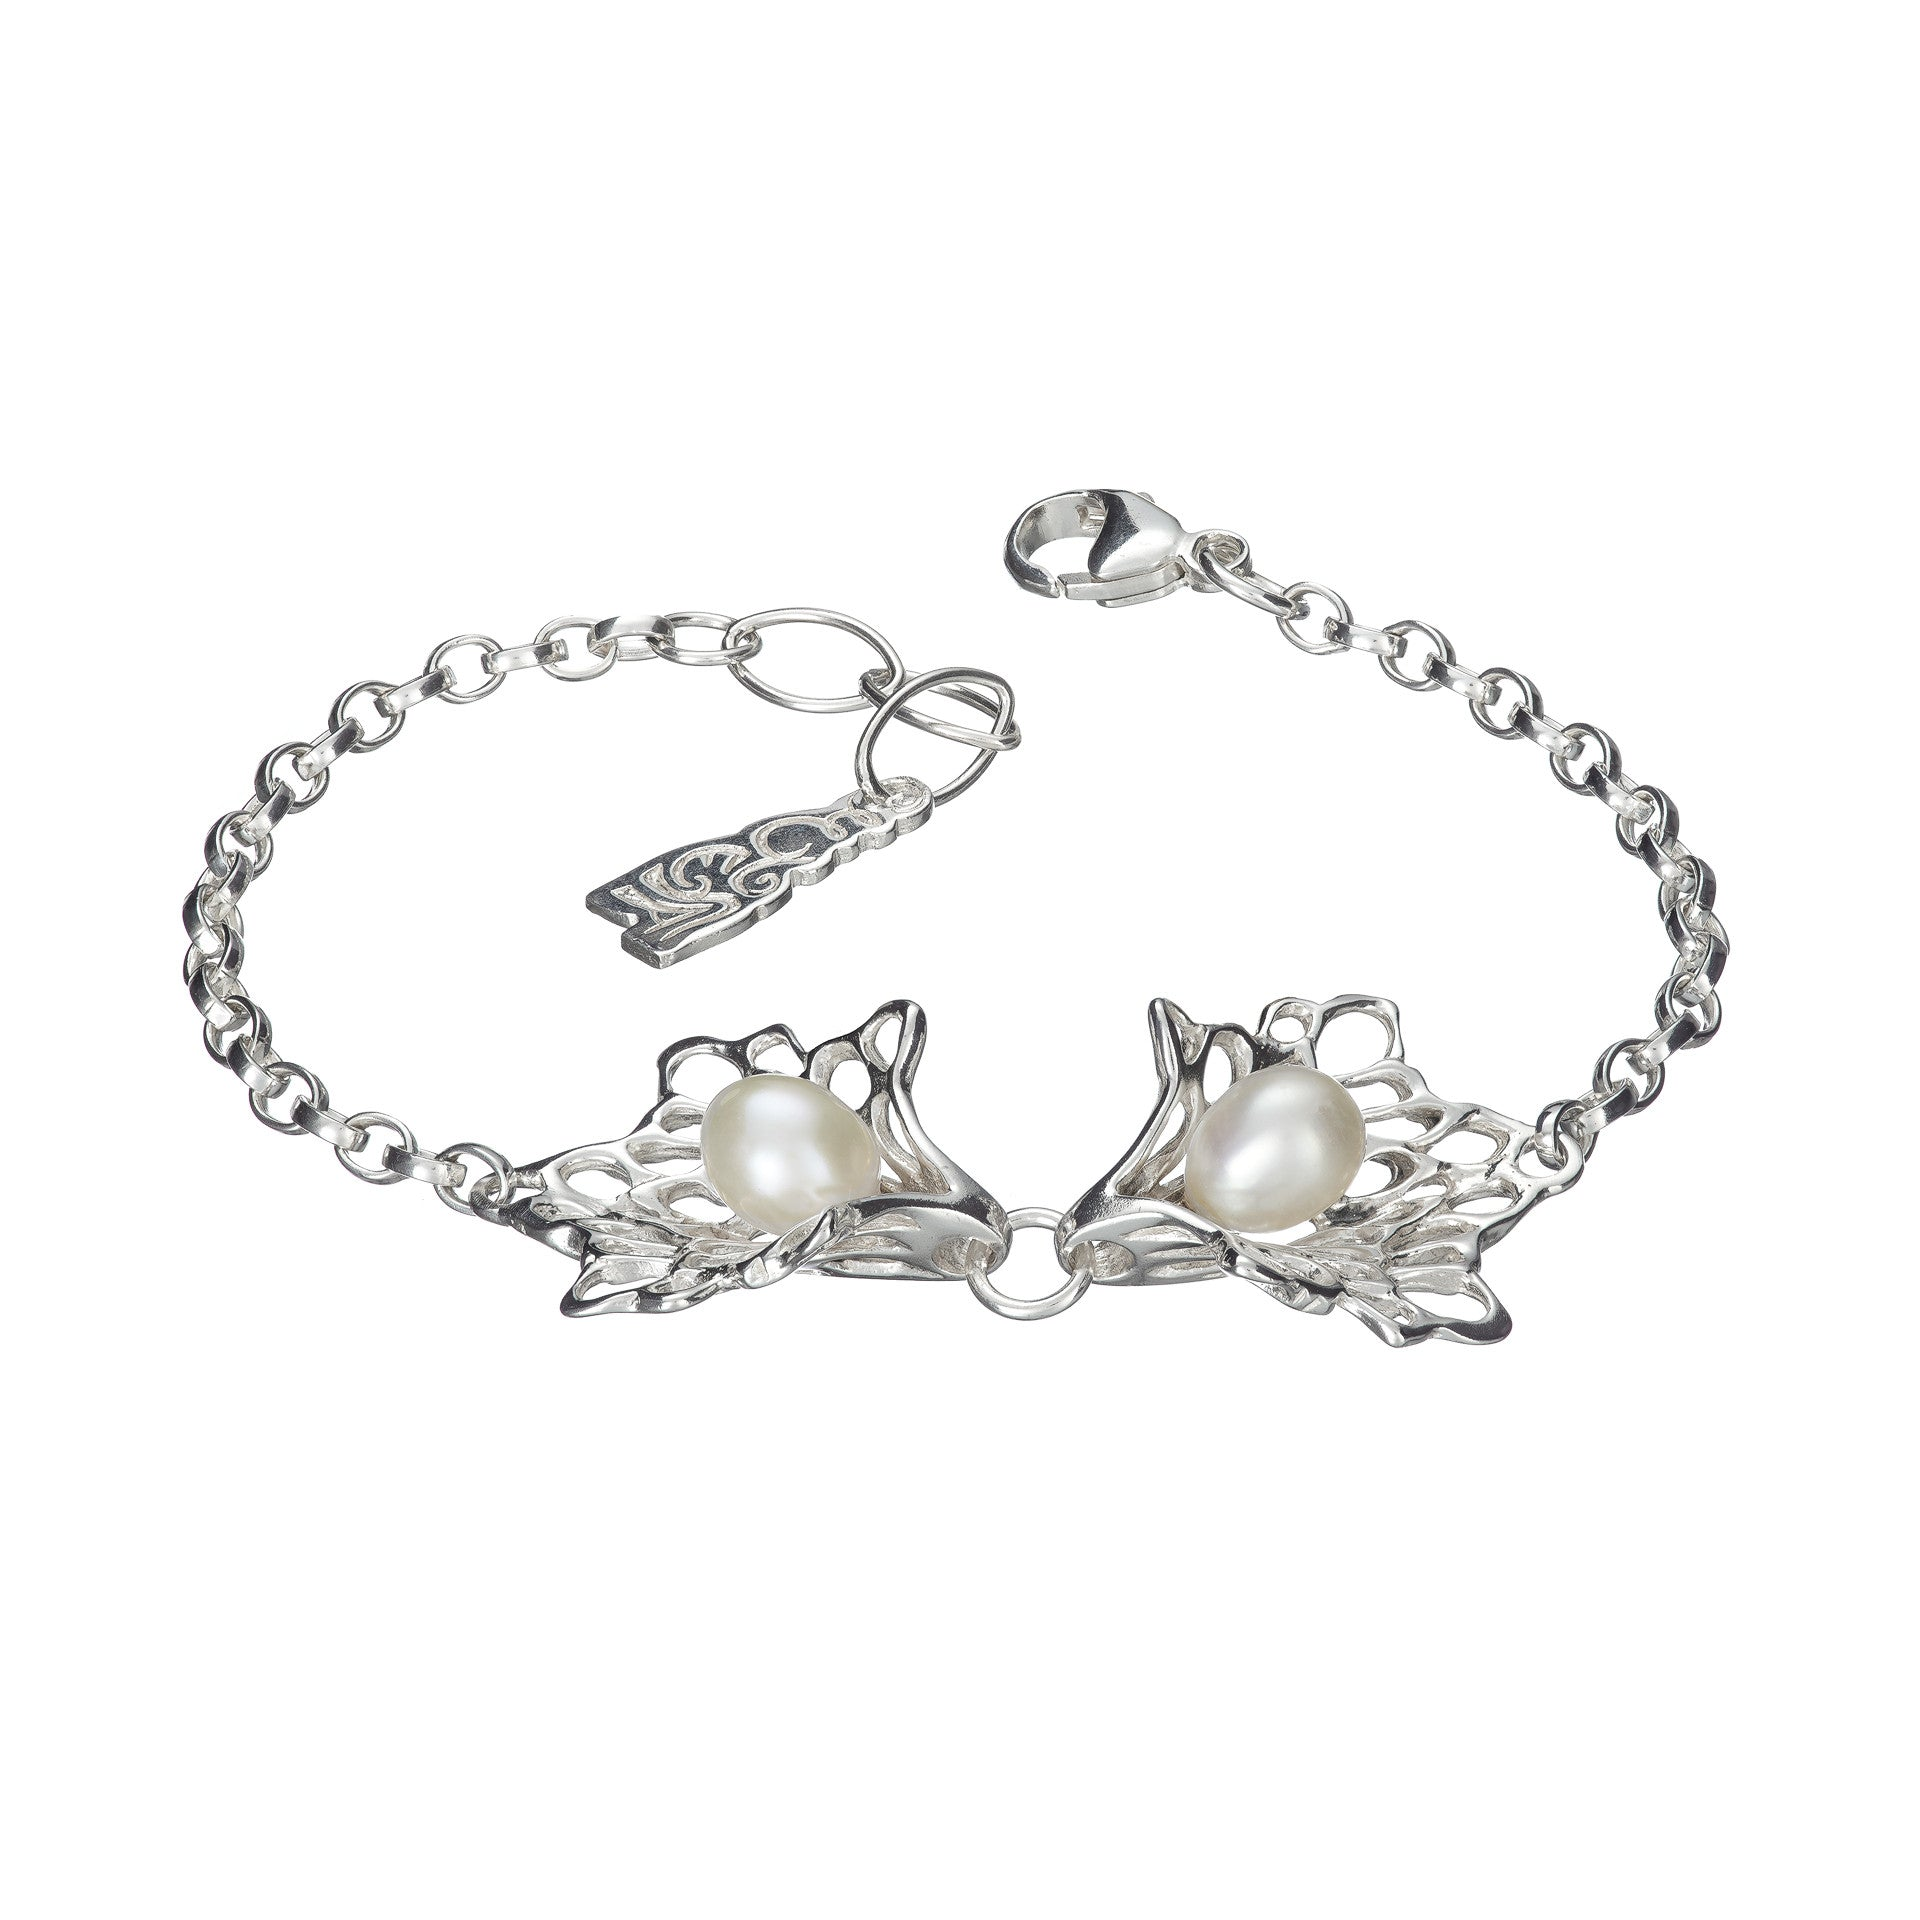 Petals & Pearls Gossamer Bracelet handcrafted from Sterling Silver by Elena.